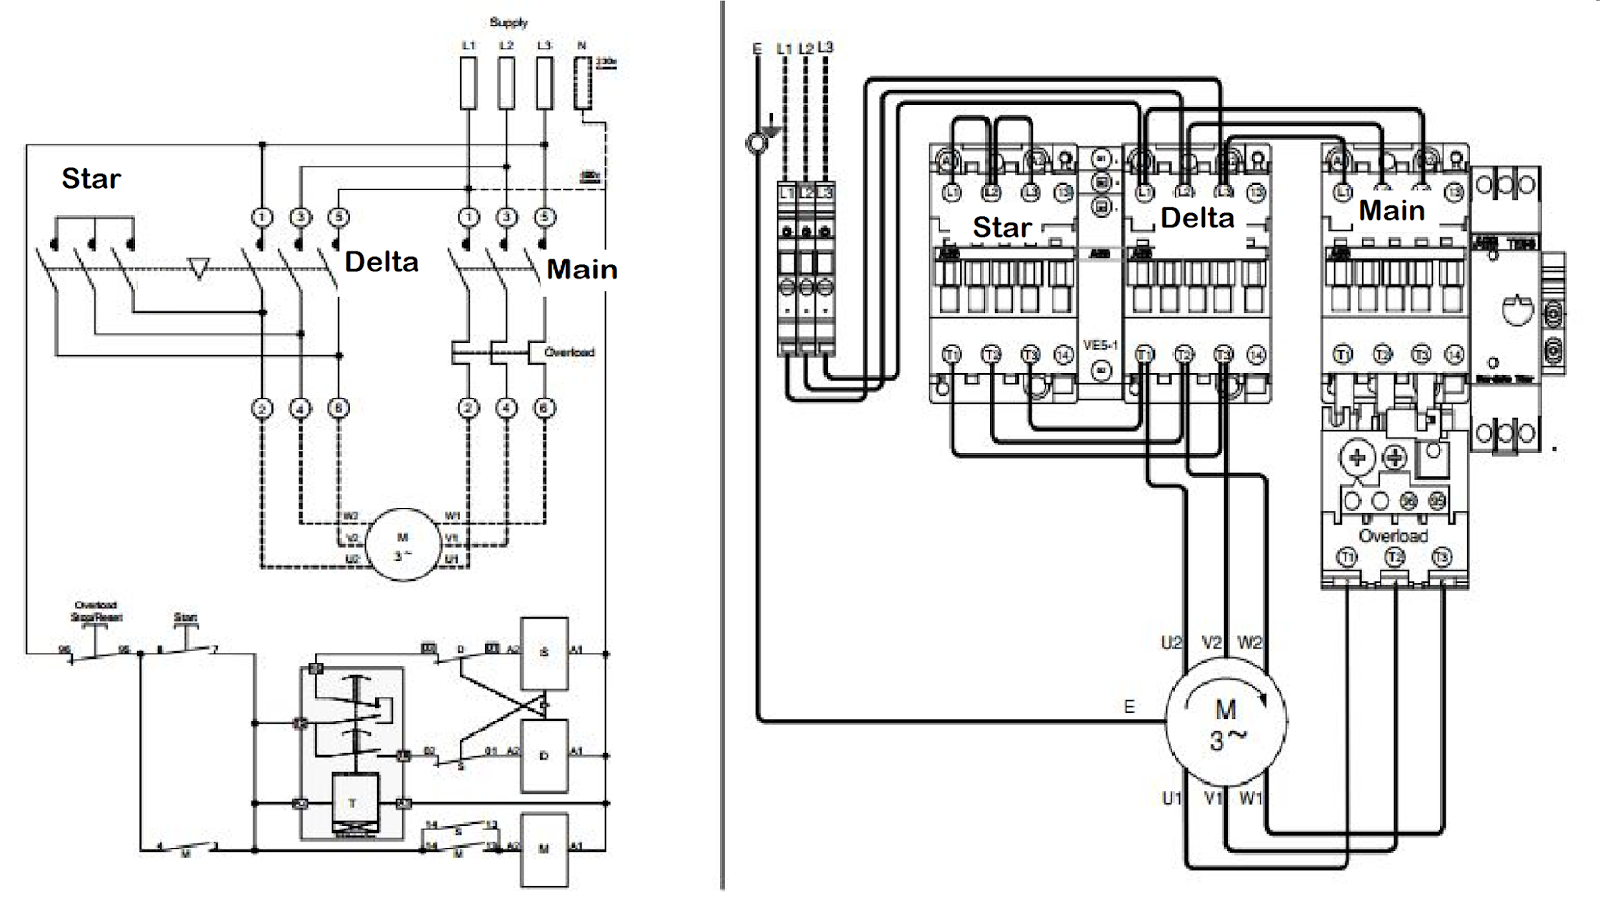 star delta starter line diagram and its working principle, wiring, electrical wiring diagram of star delta